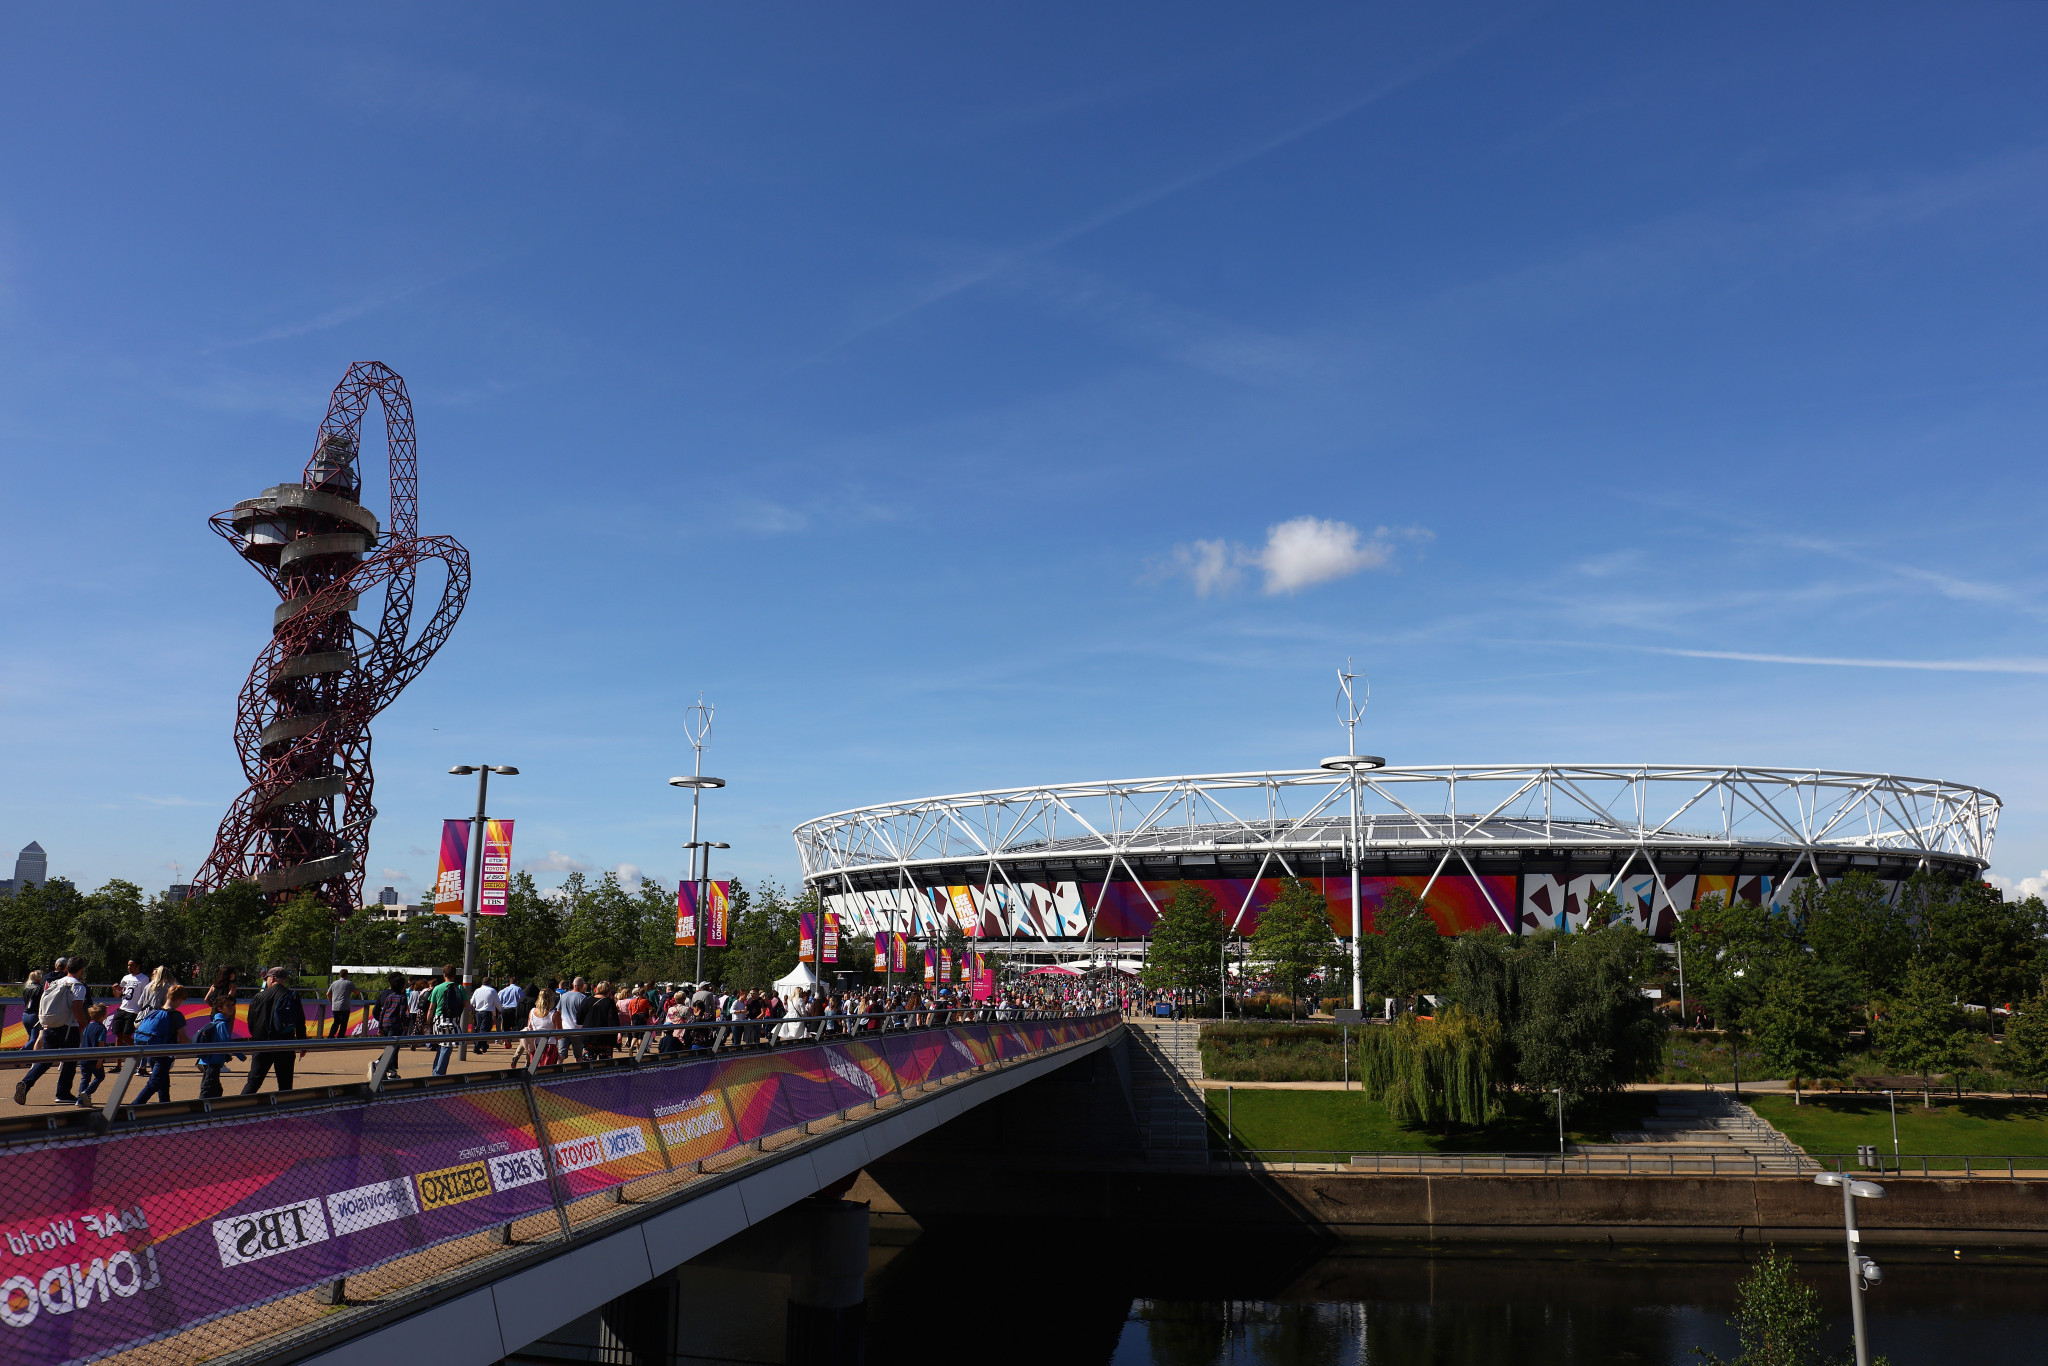 Garden to honour COVID-19 victims to be created at London 2012's Olympic Park